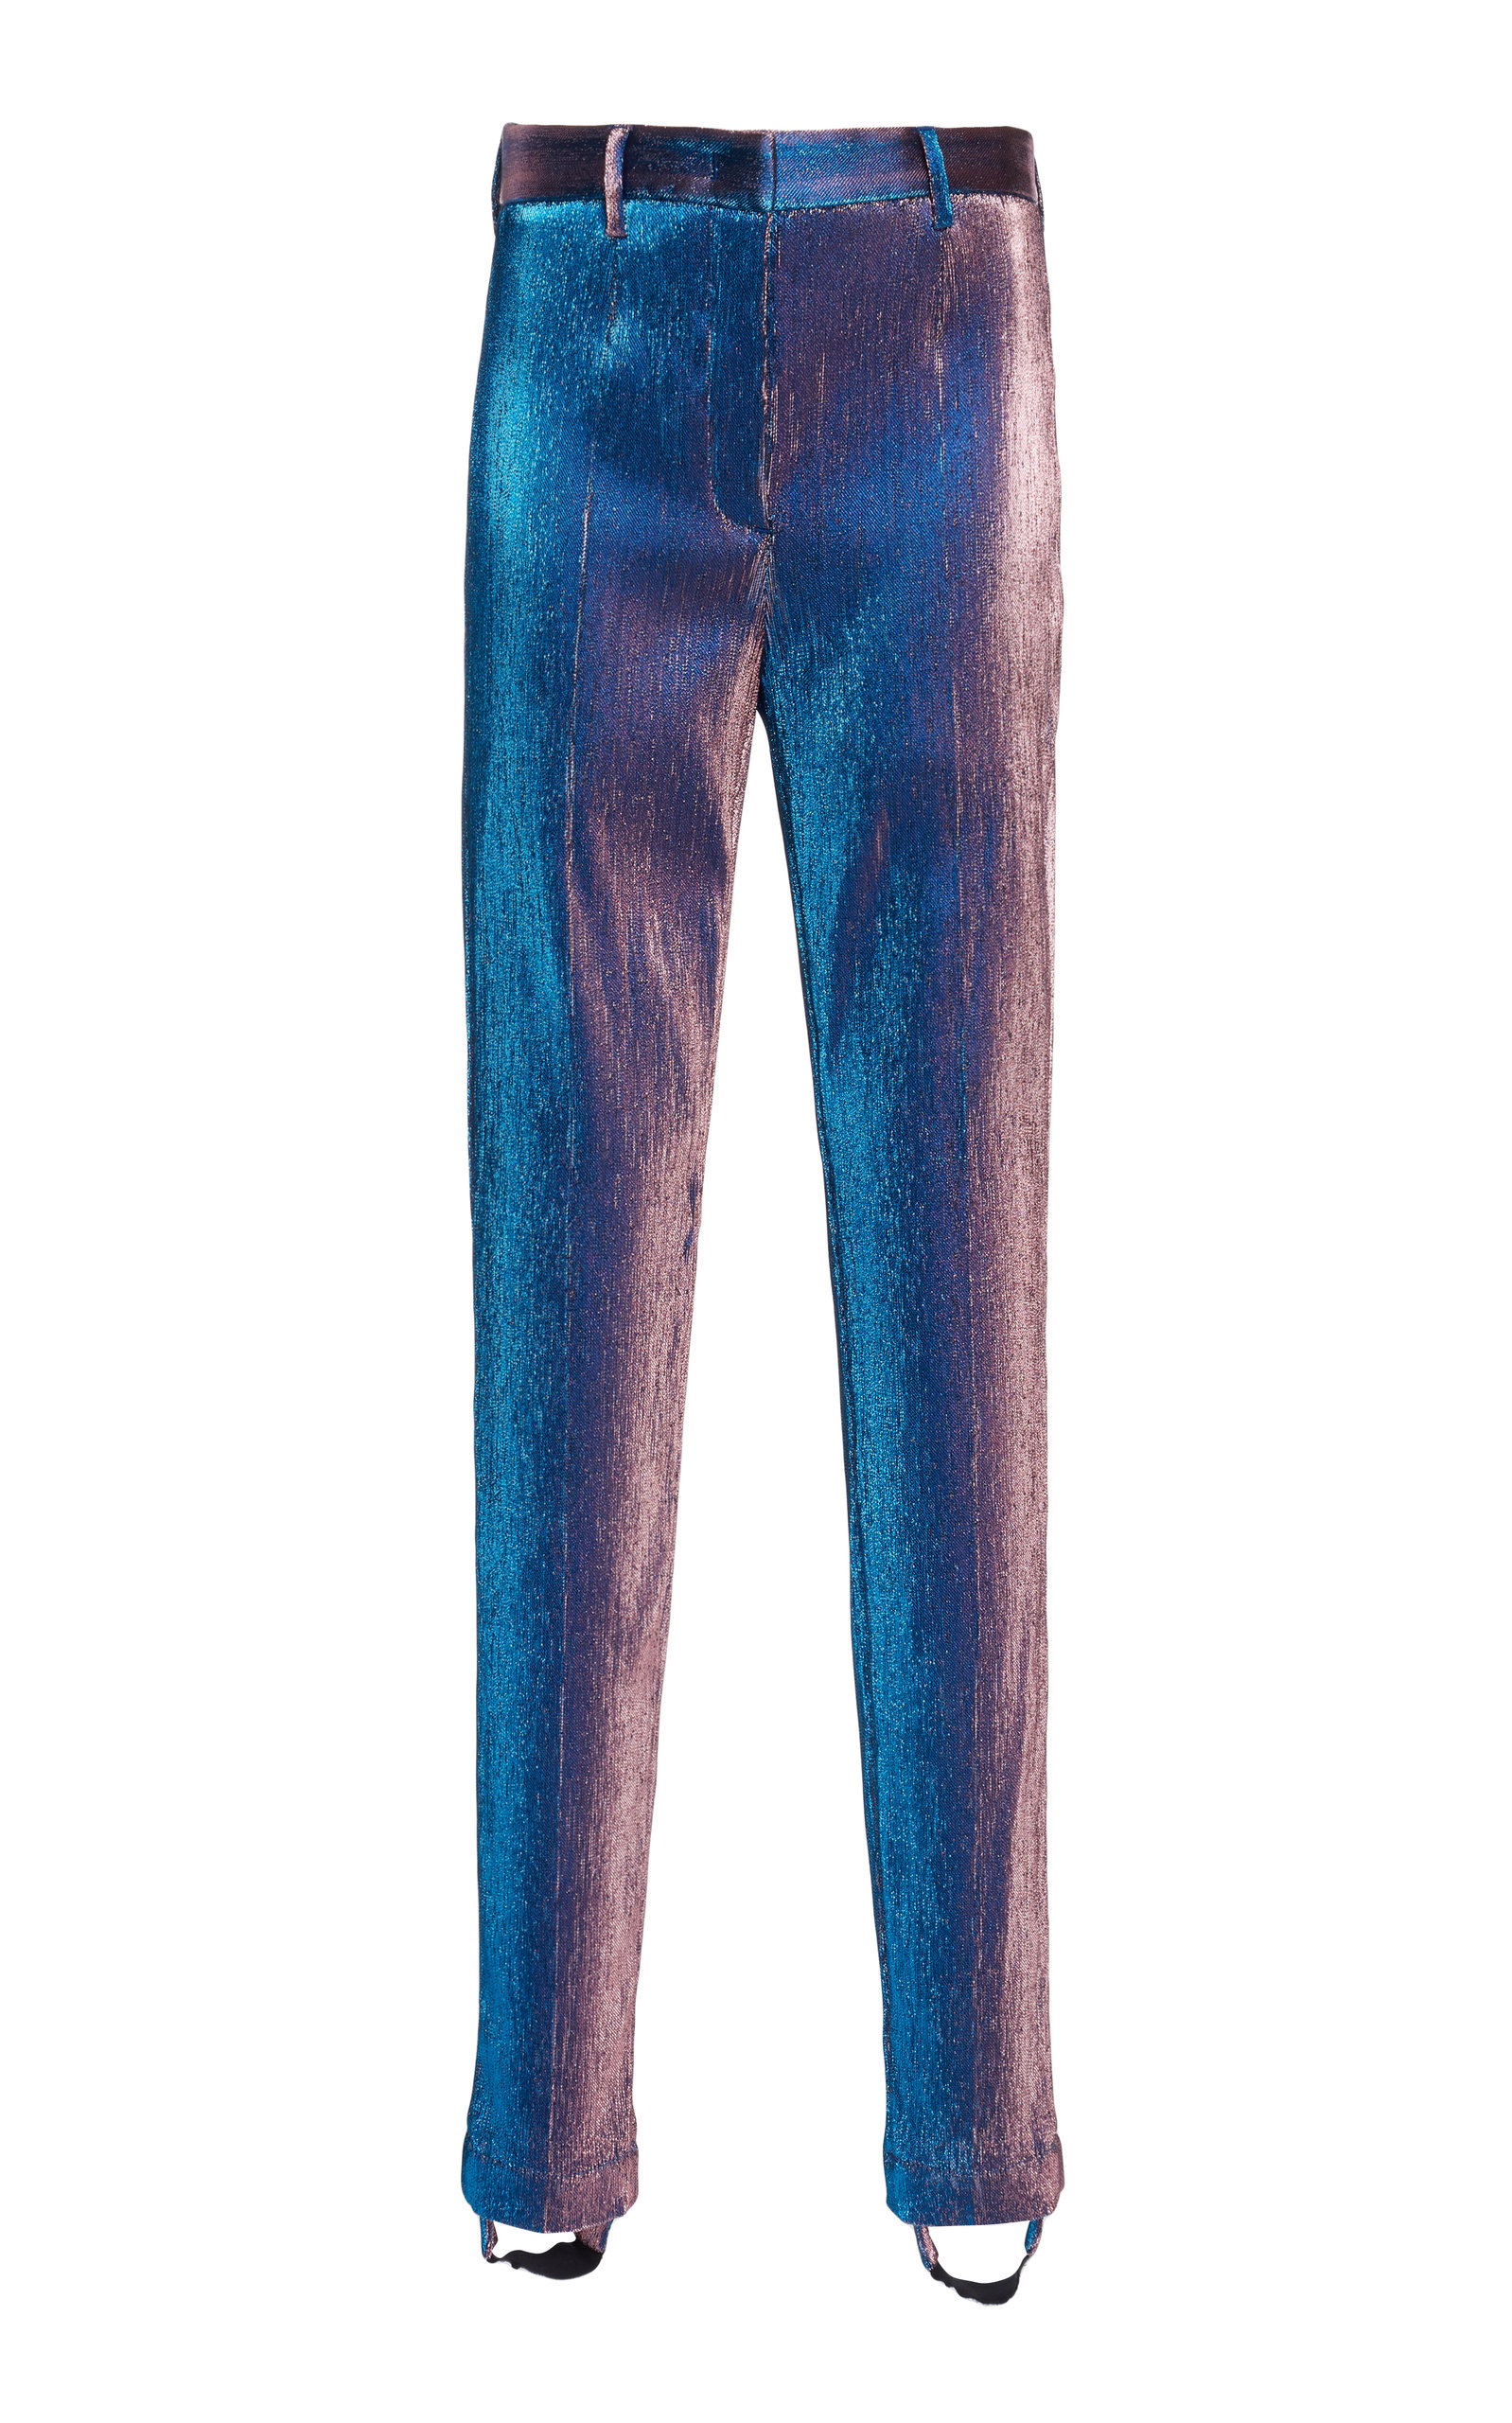 ROBERTO CAVALLI Stirrup High-Rise Metallic Skinny Pants in Purple